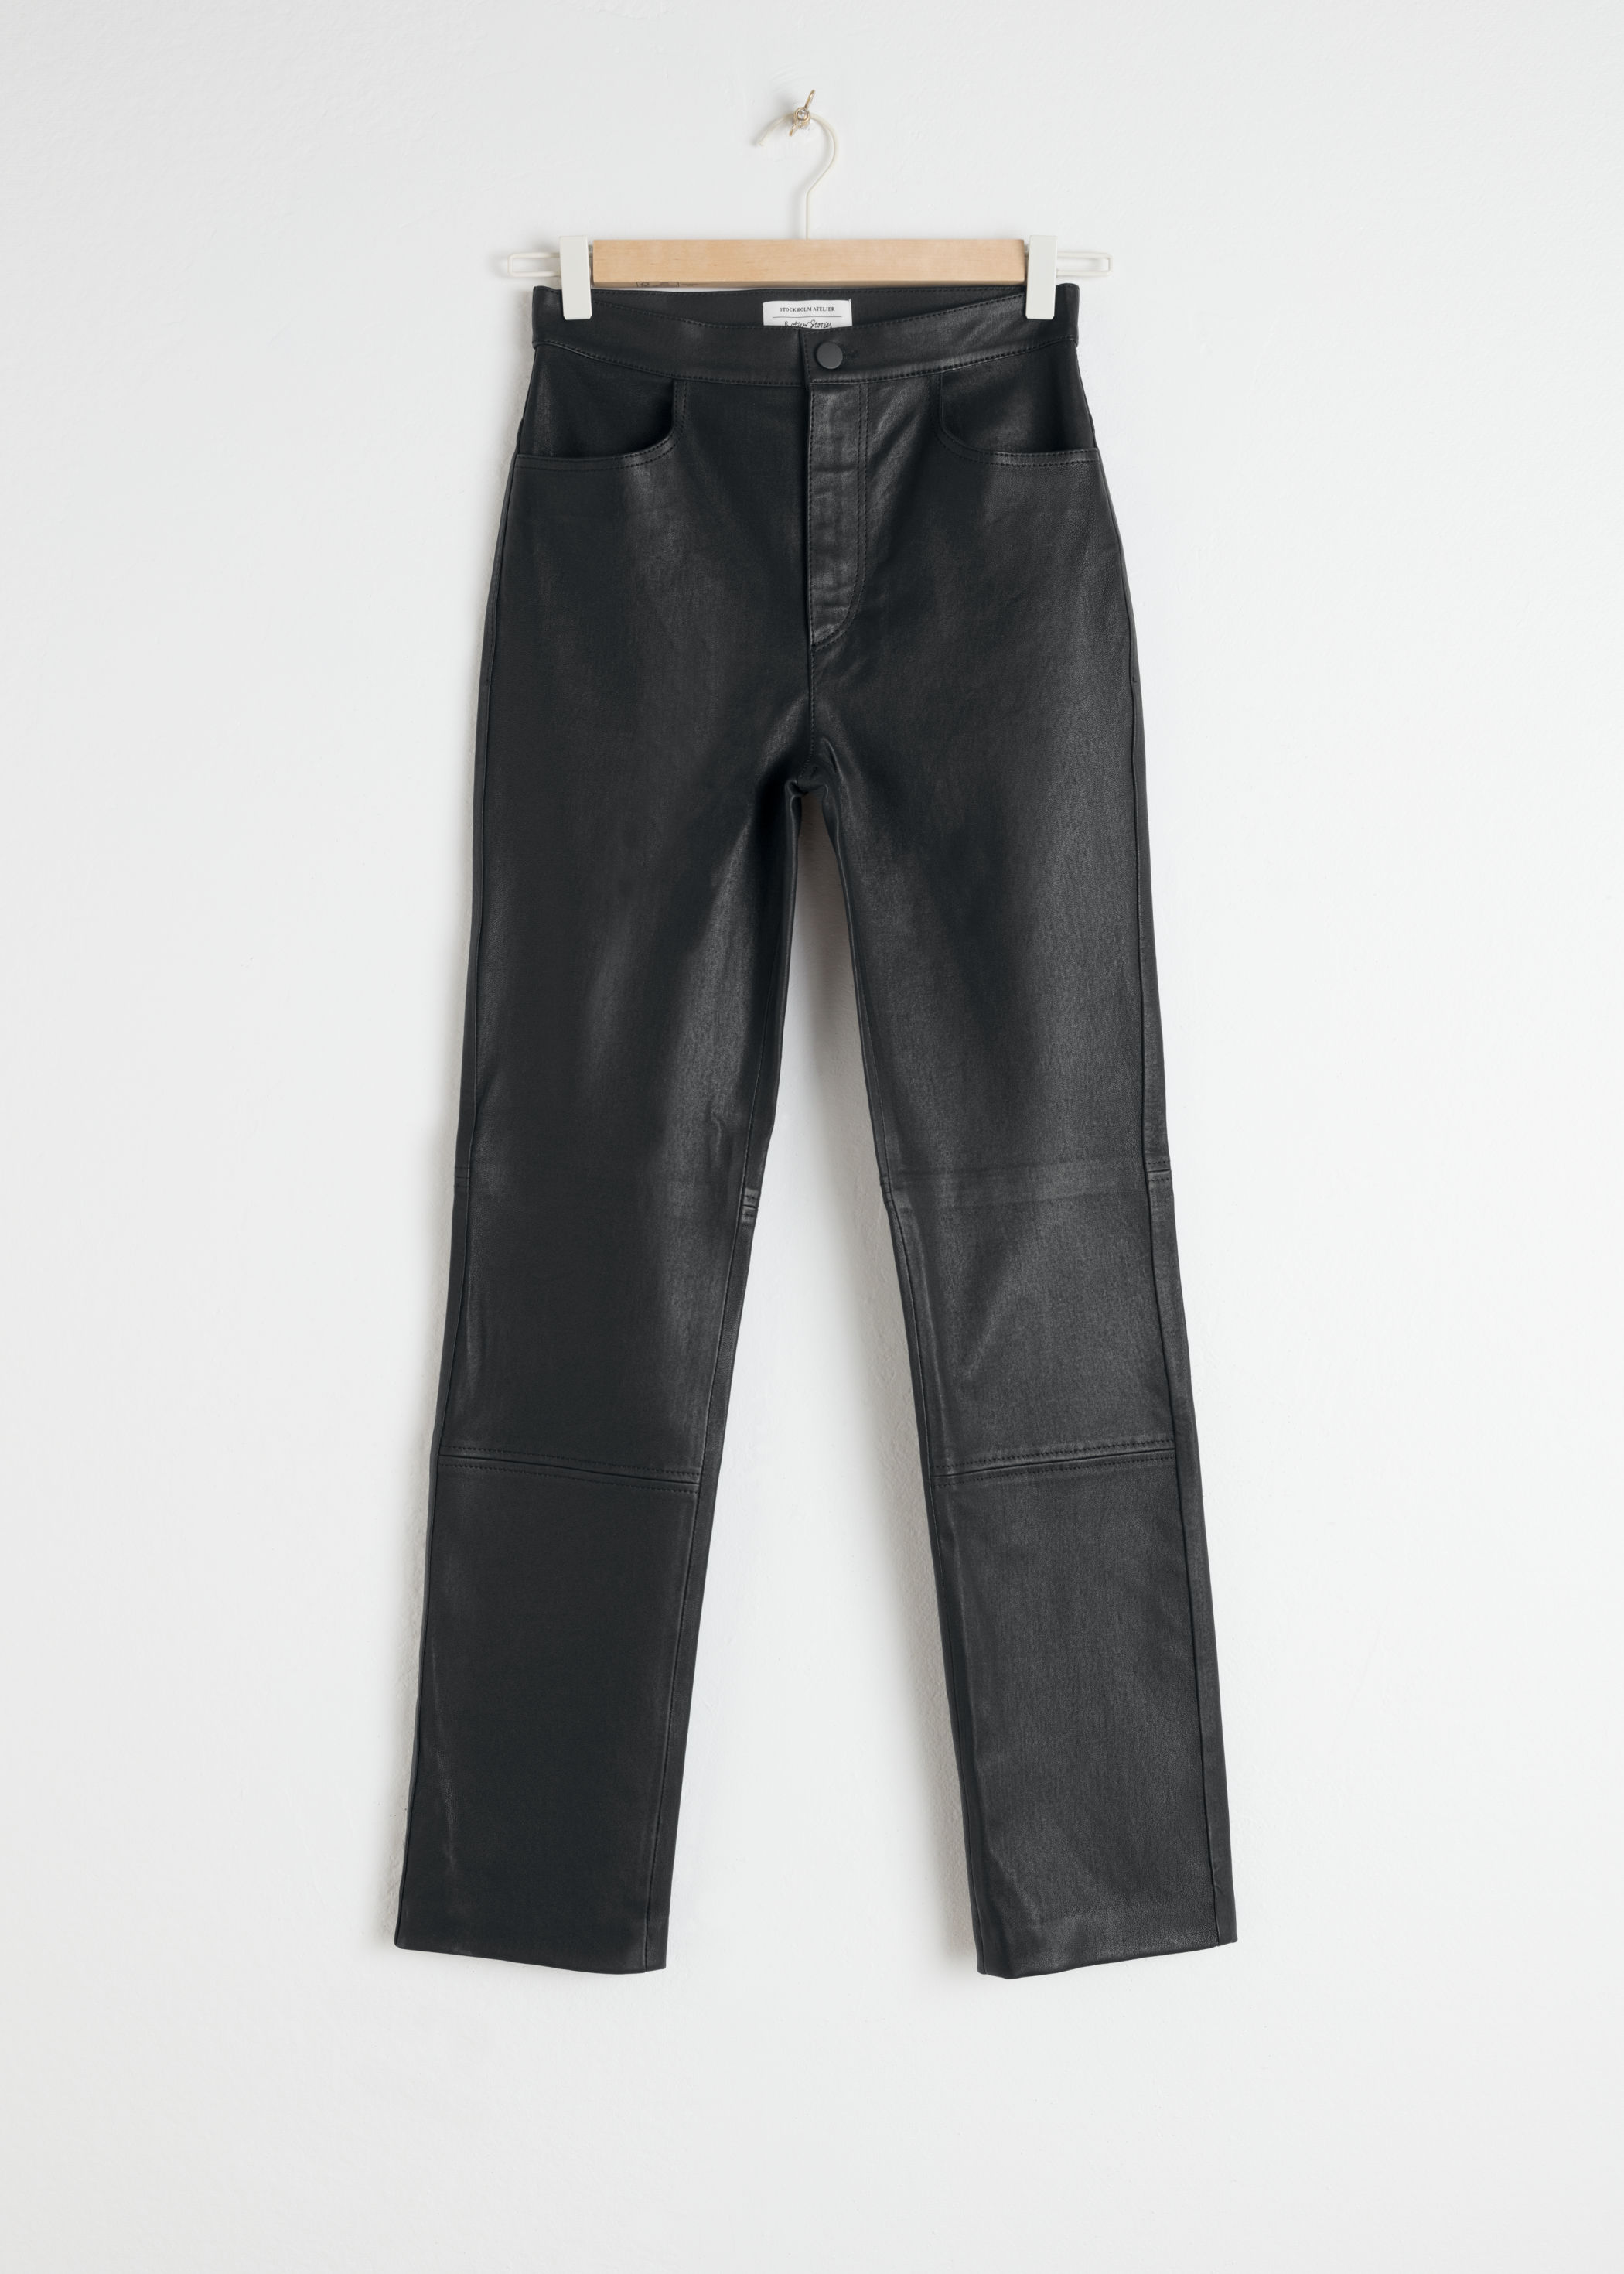 High Waisted Black Leather Pants